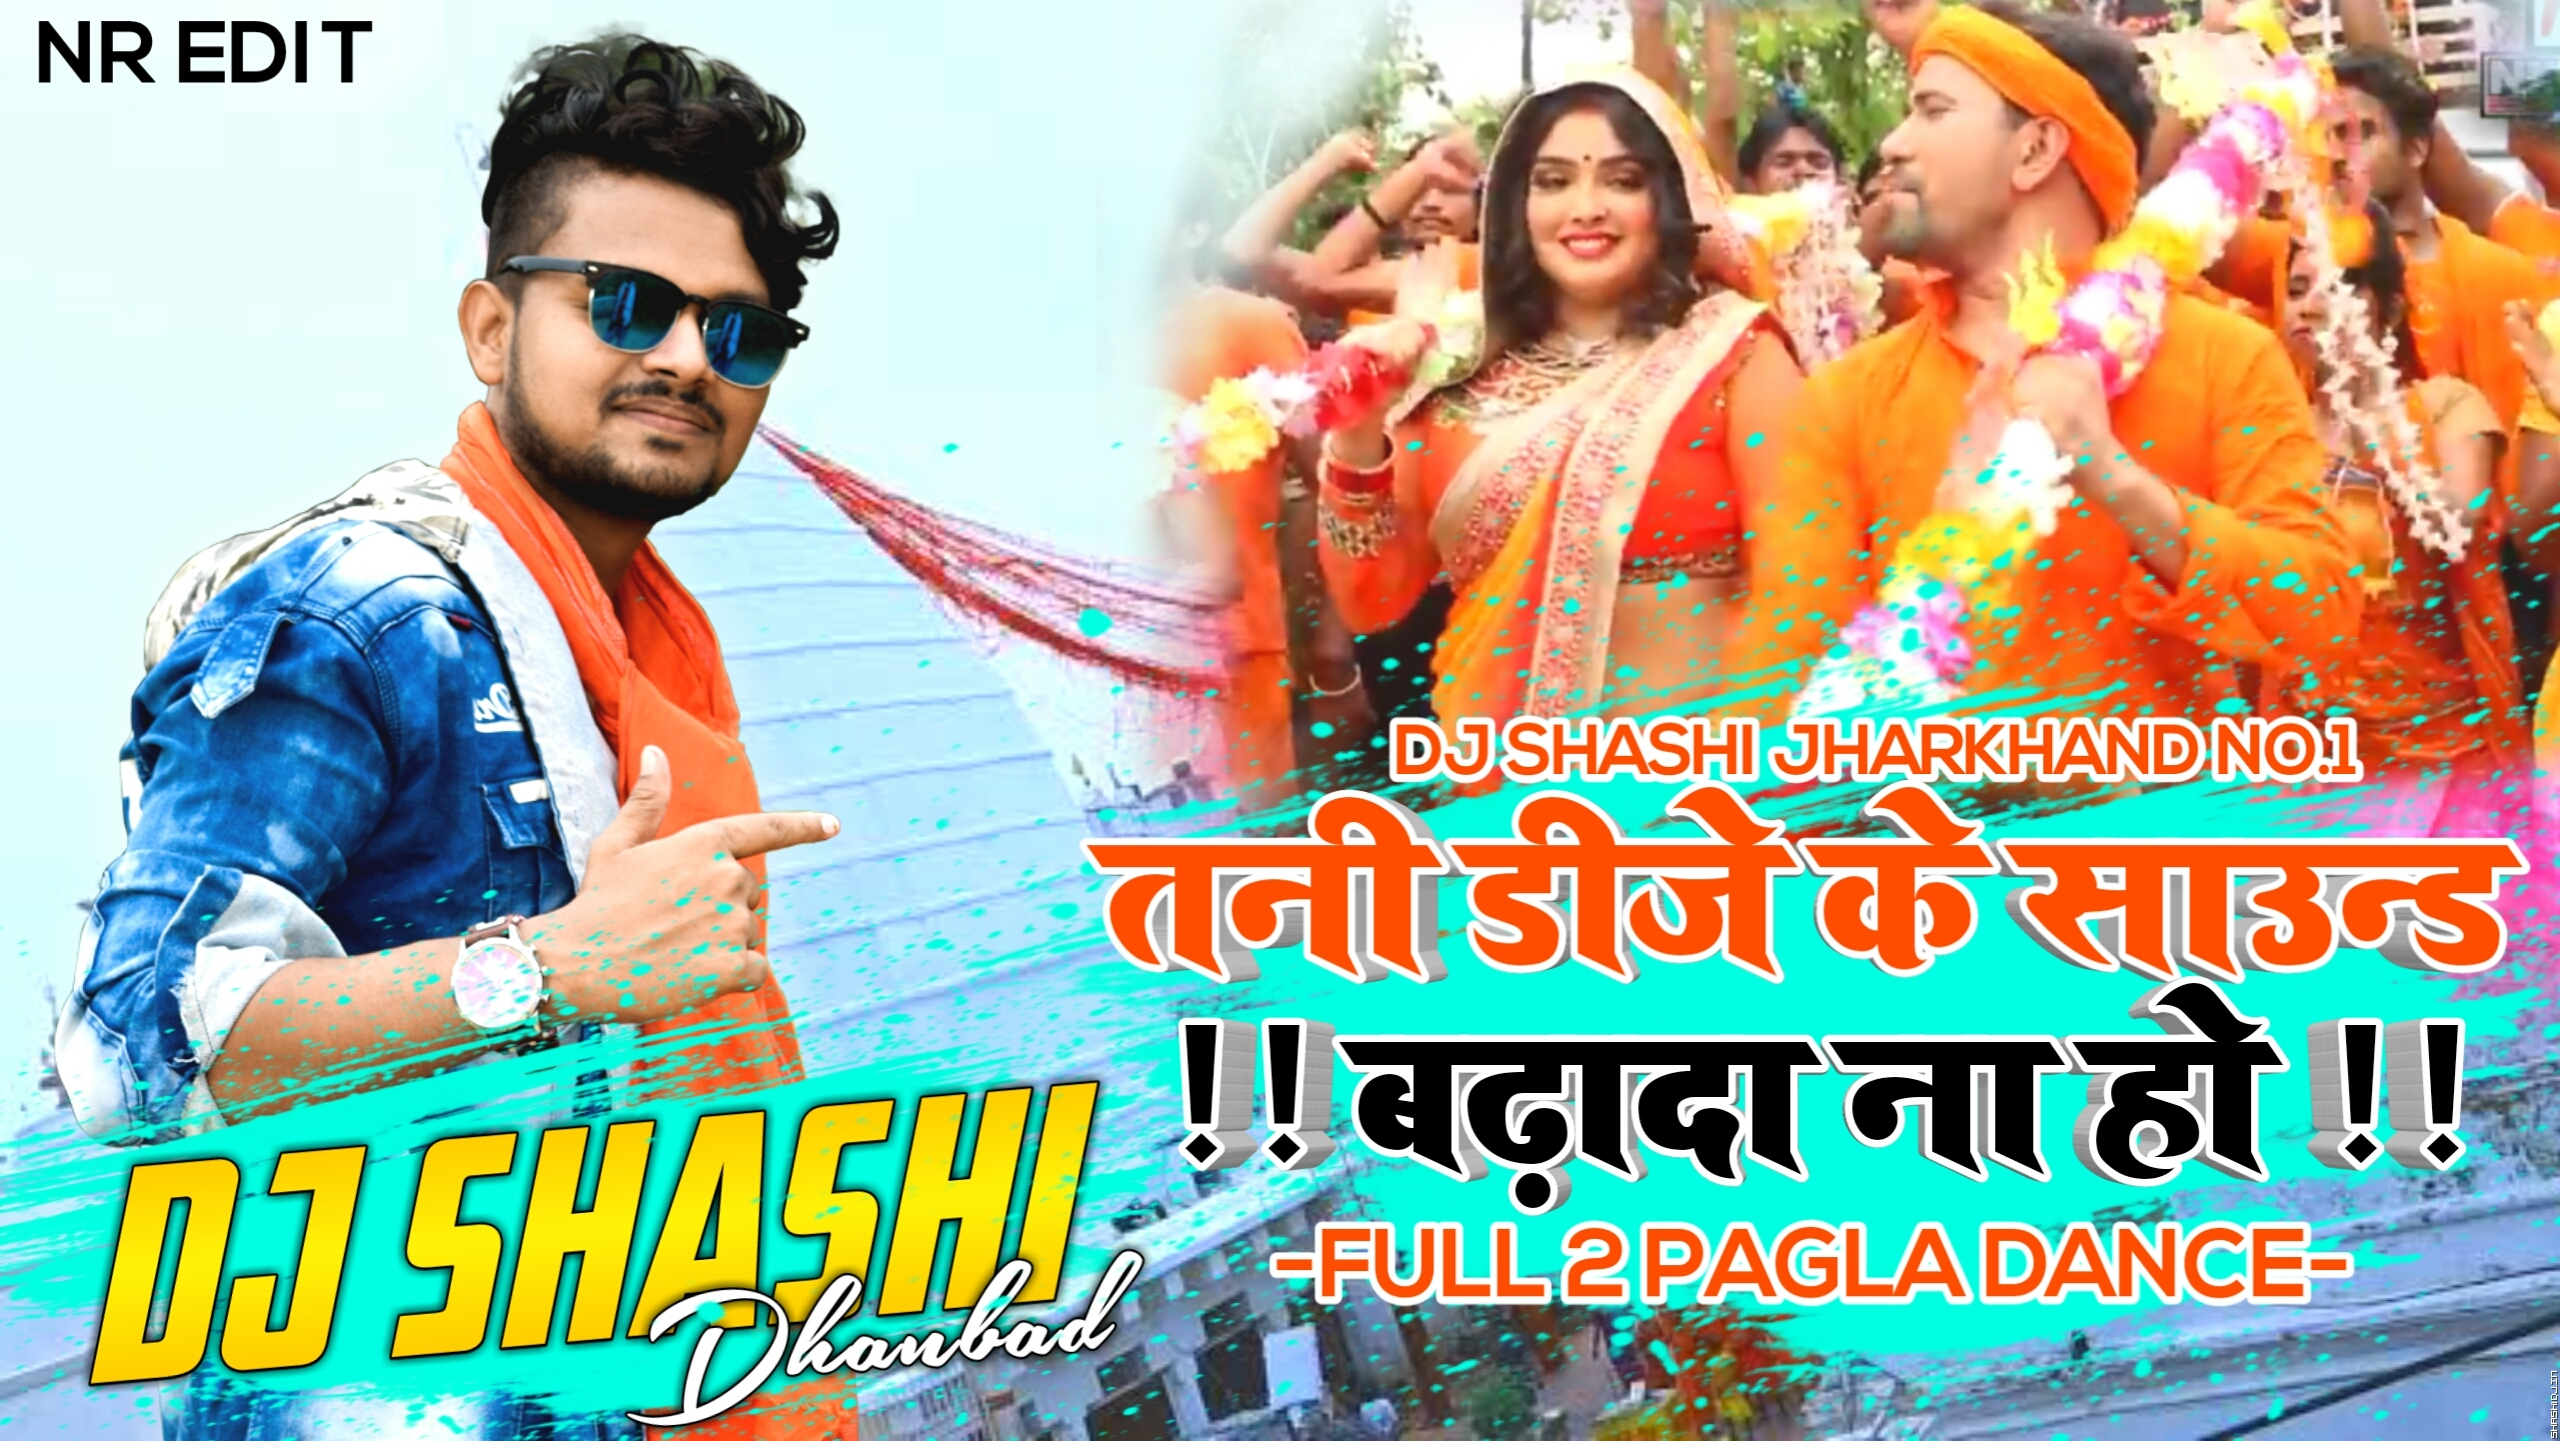 Tani DJ Ke Volume Badha Da no Ho Full2 Pagla Dance Mix By Dj Shashi.mp3